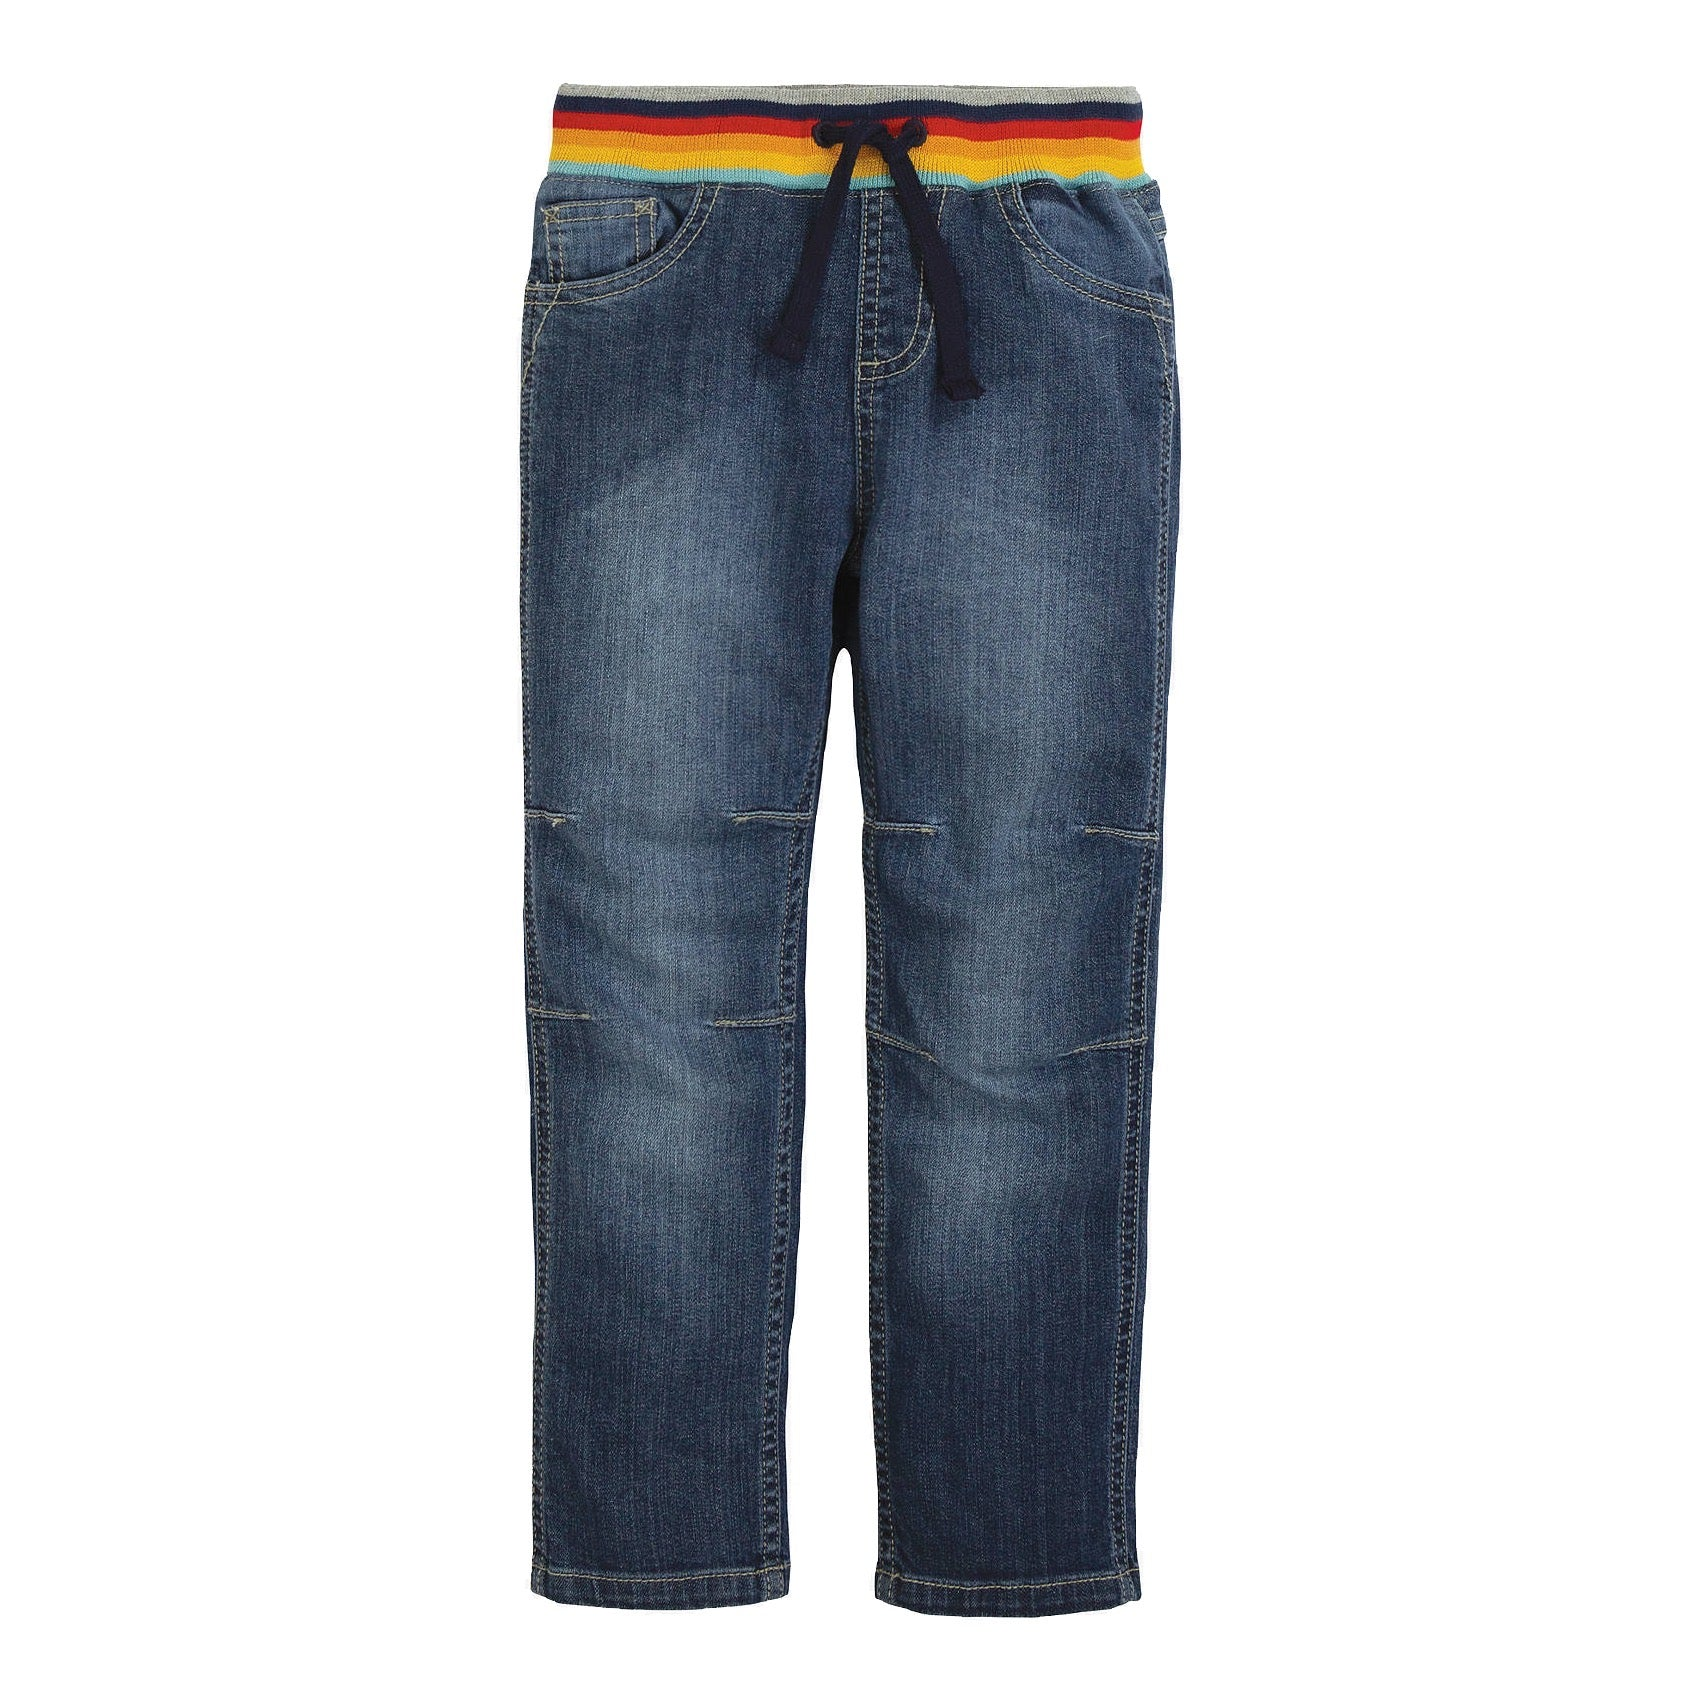 Frugi Cody Comfy Jeans Jea953lwd